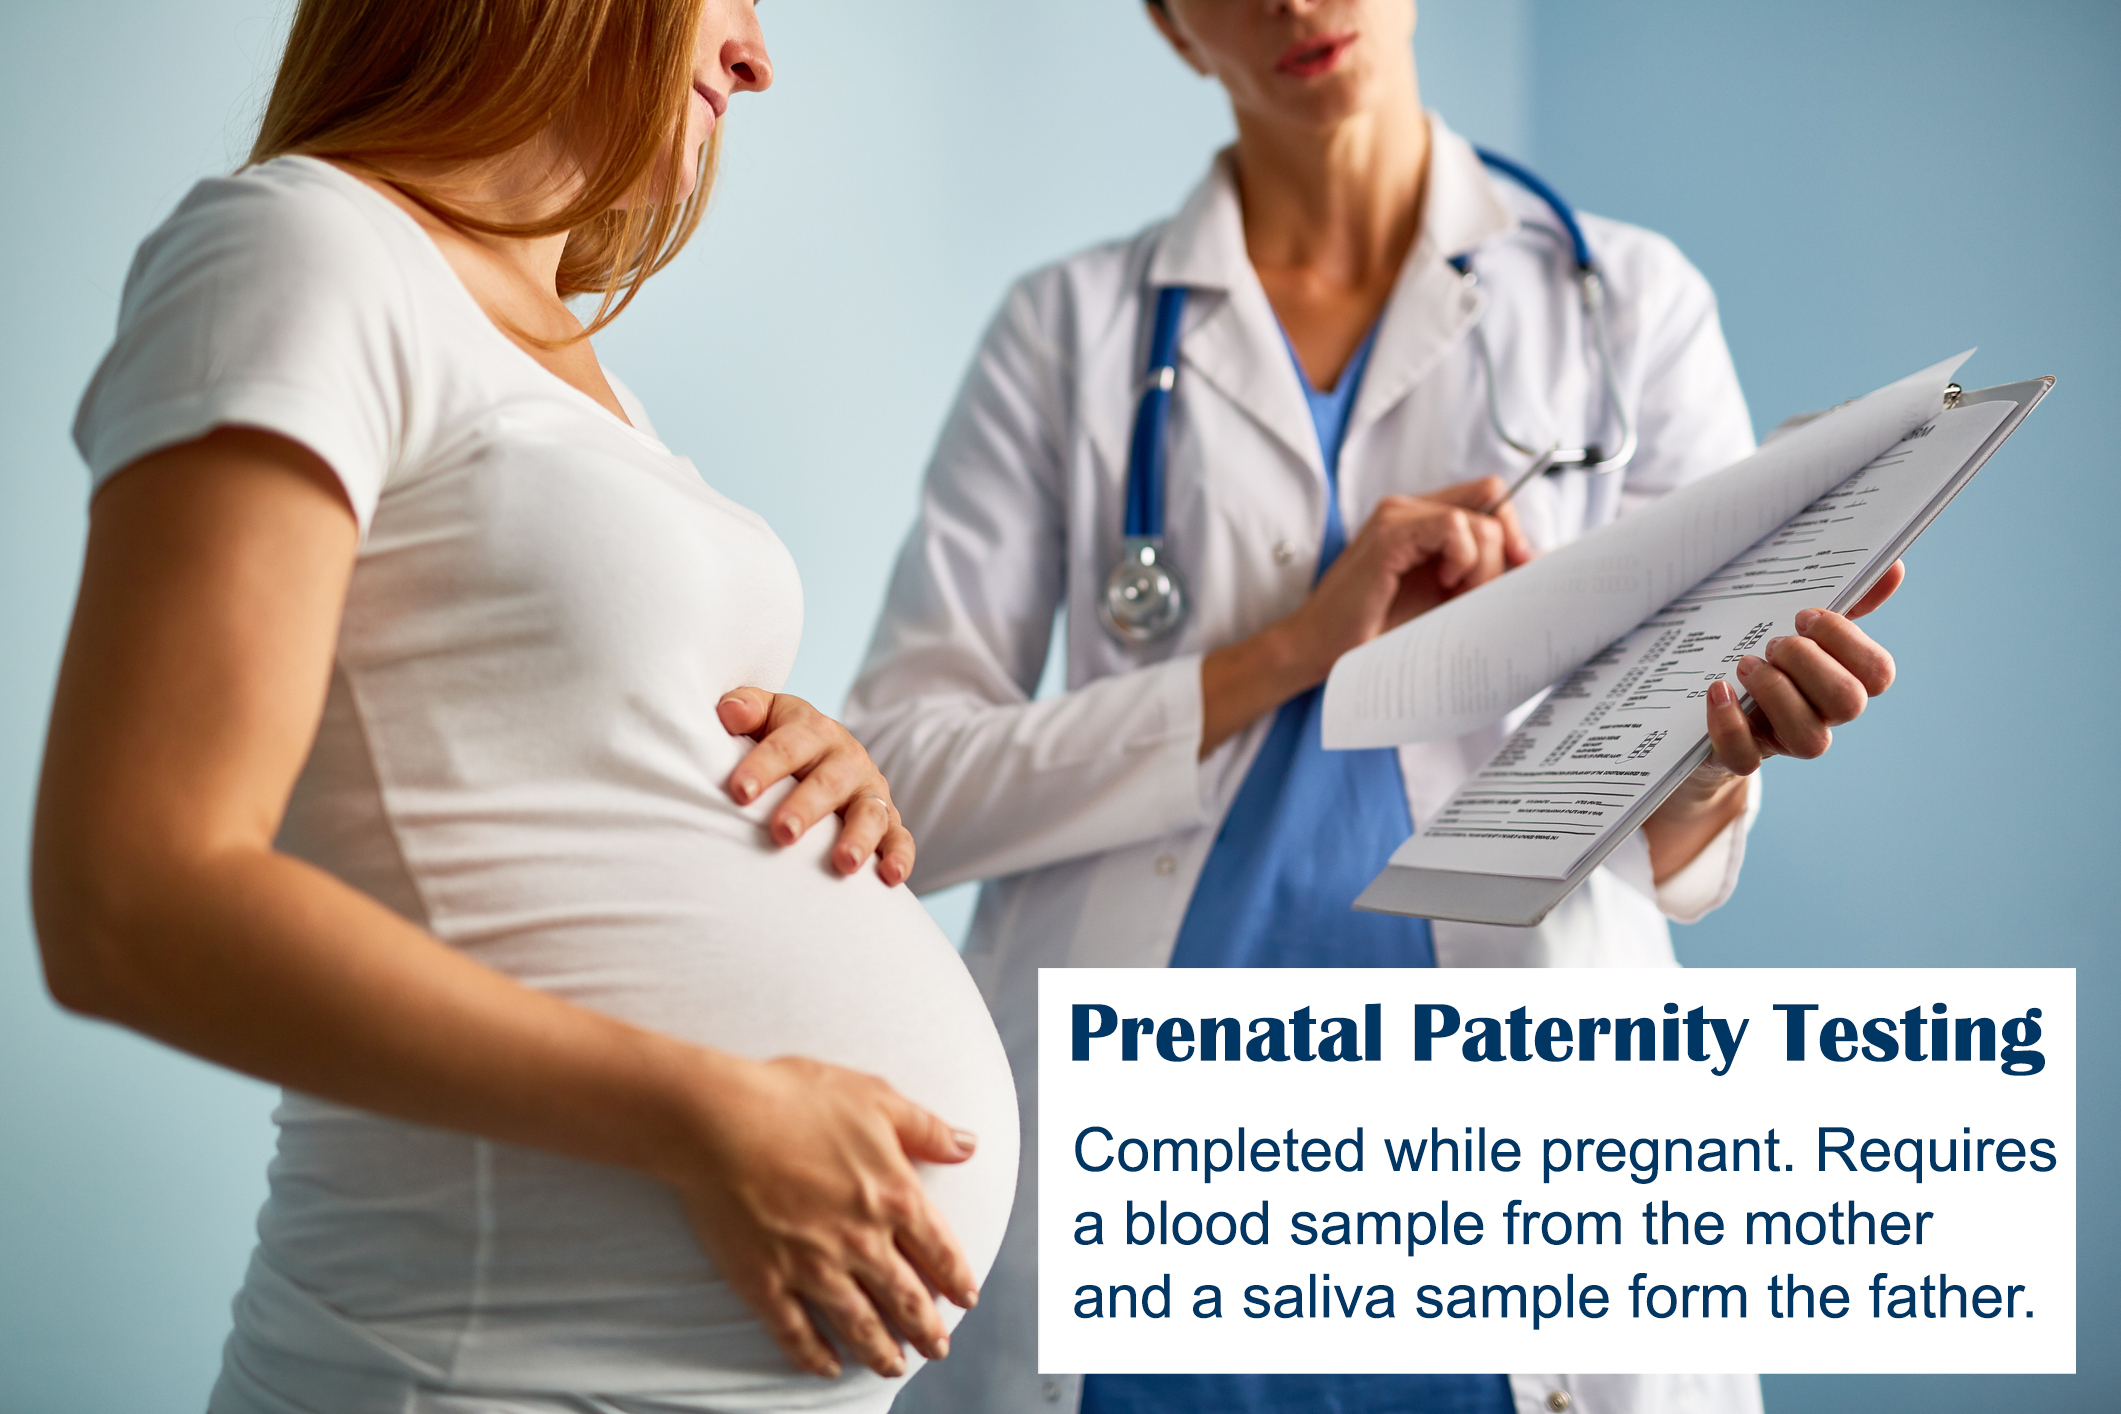 Legal Prenatal Paternity Testing